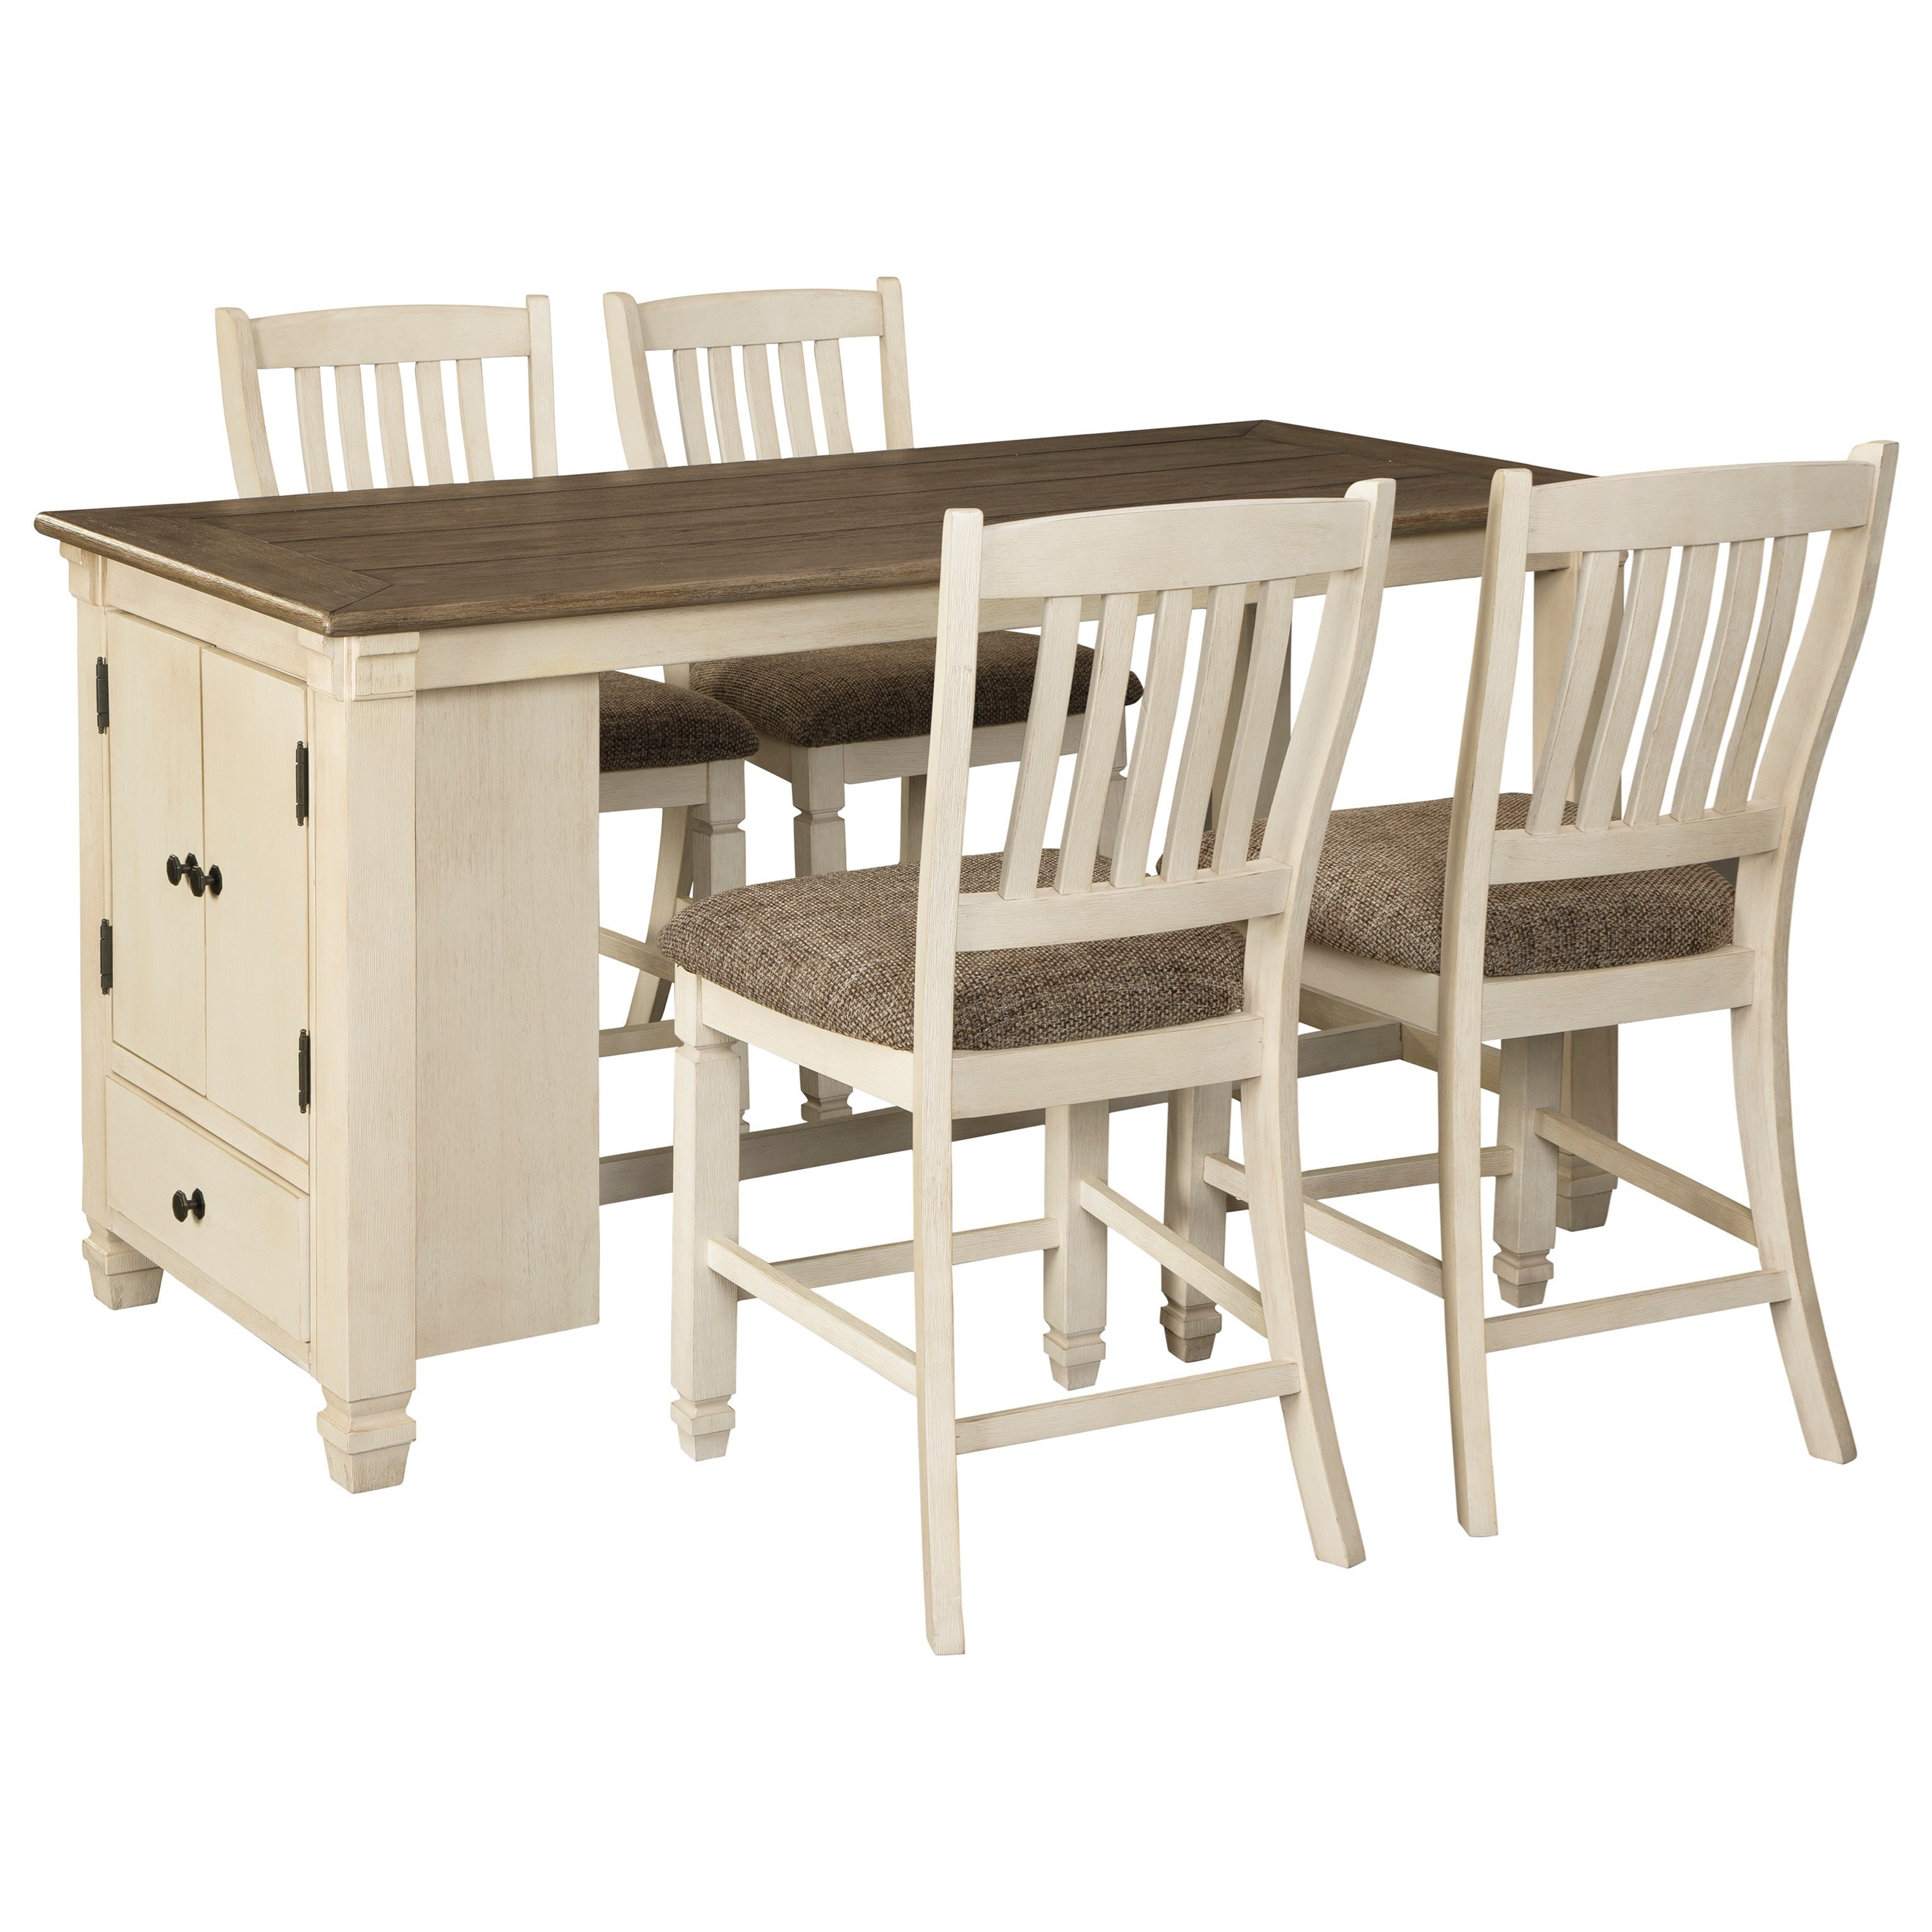 Bolanburg 5-Piece Rect. Dining Room Counter Table Set by Signature Design by Ashley at Northeast Factory Direct